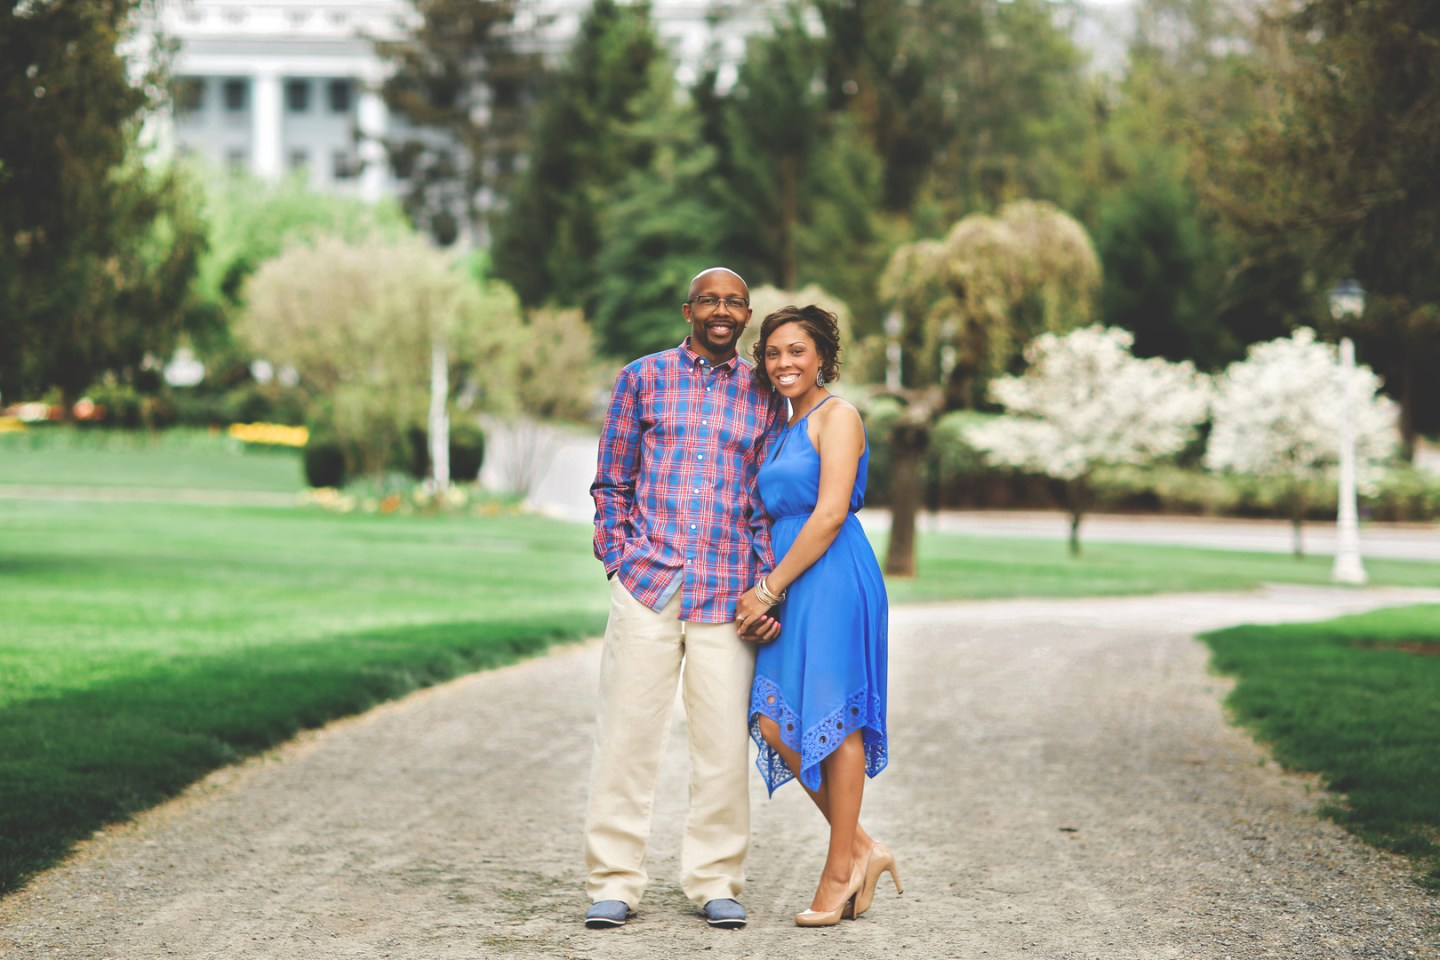 9uon6dxo9ygs6p6sps15_big West Virginia Engagement Session at the Greenbriar Resort